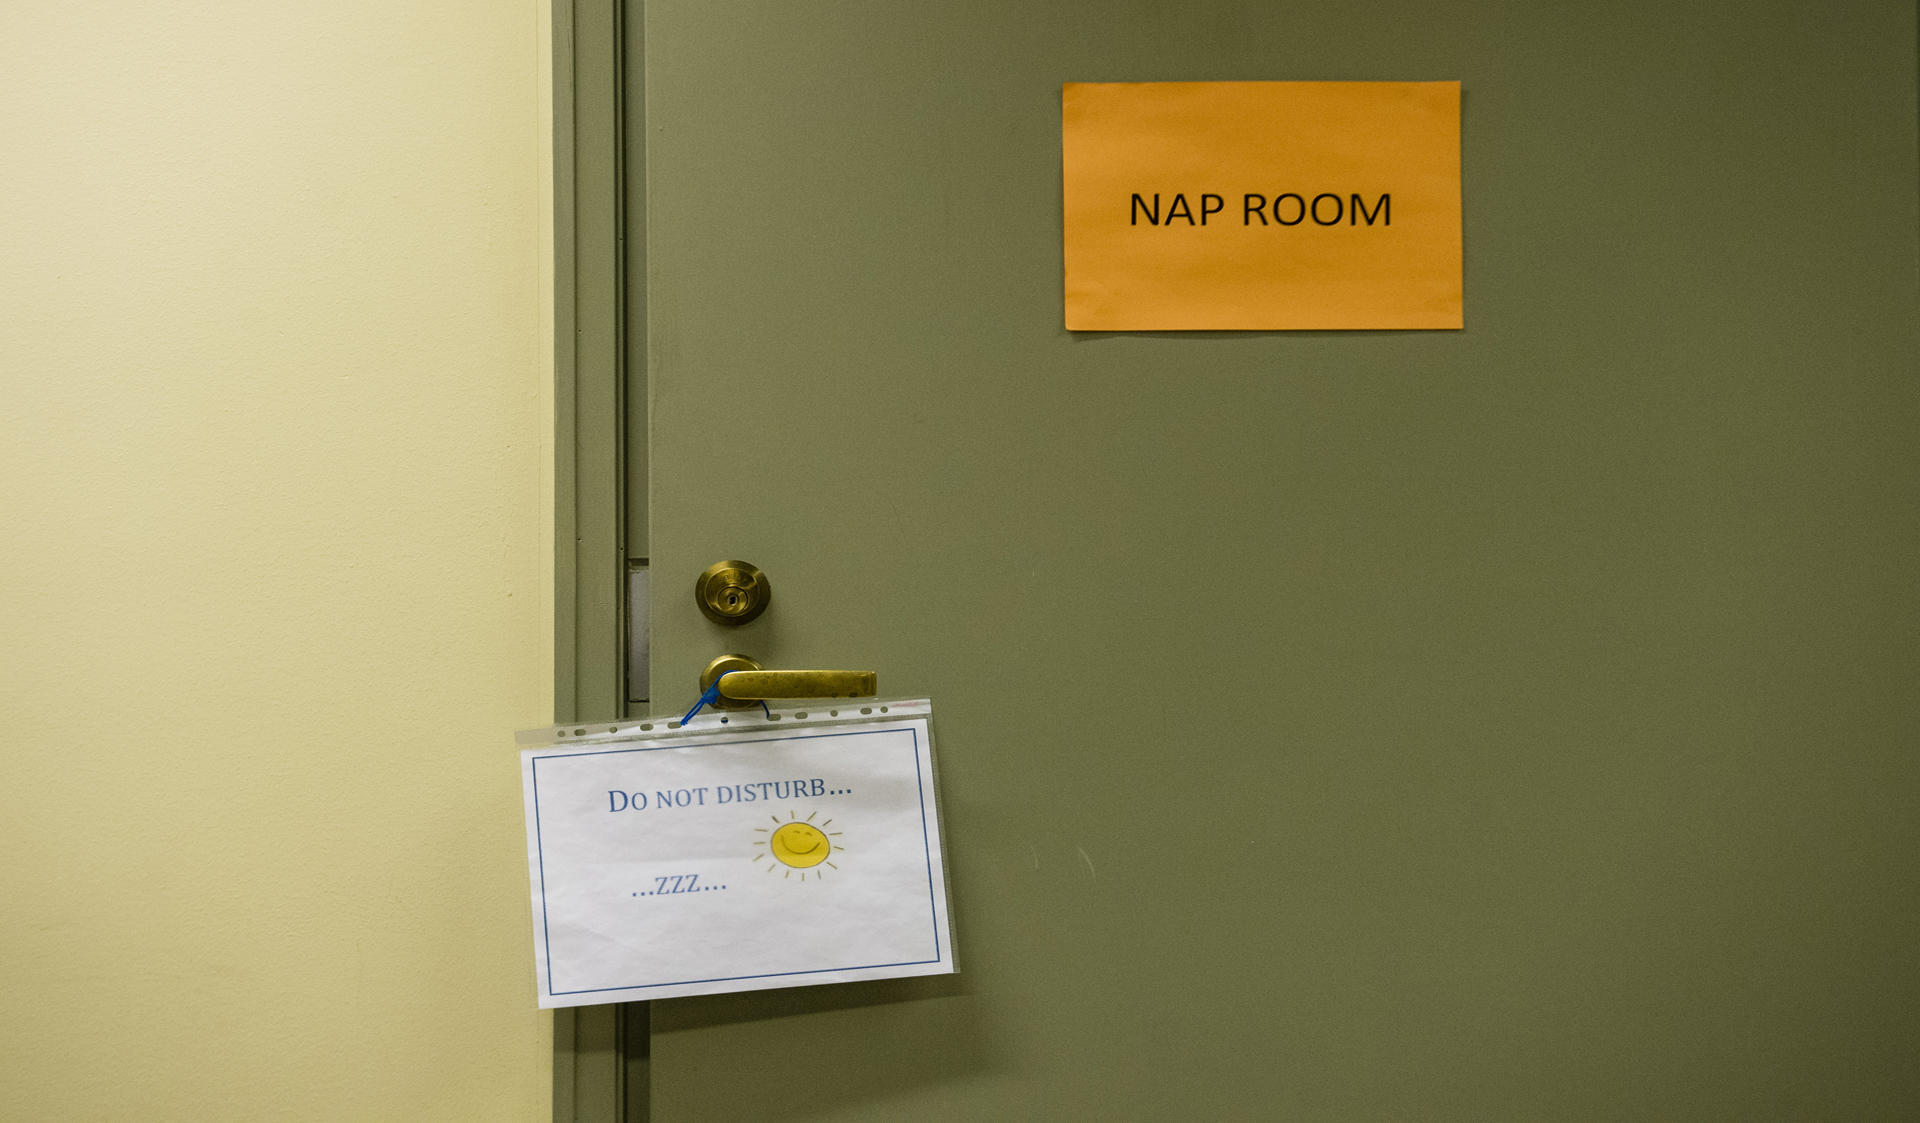 """A door that has a paper with the text """"nap room"""" on it. A sign with the text """"do not disturb"""" is hanging from the door handle."""